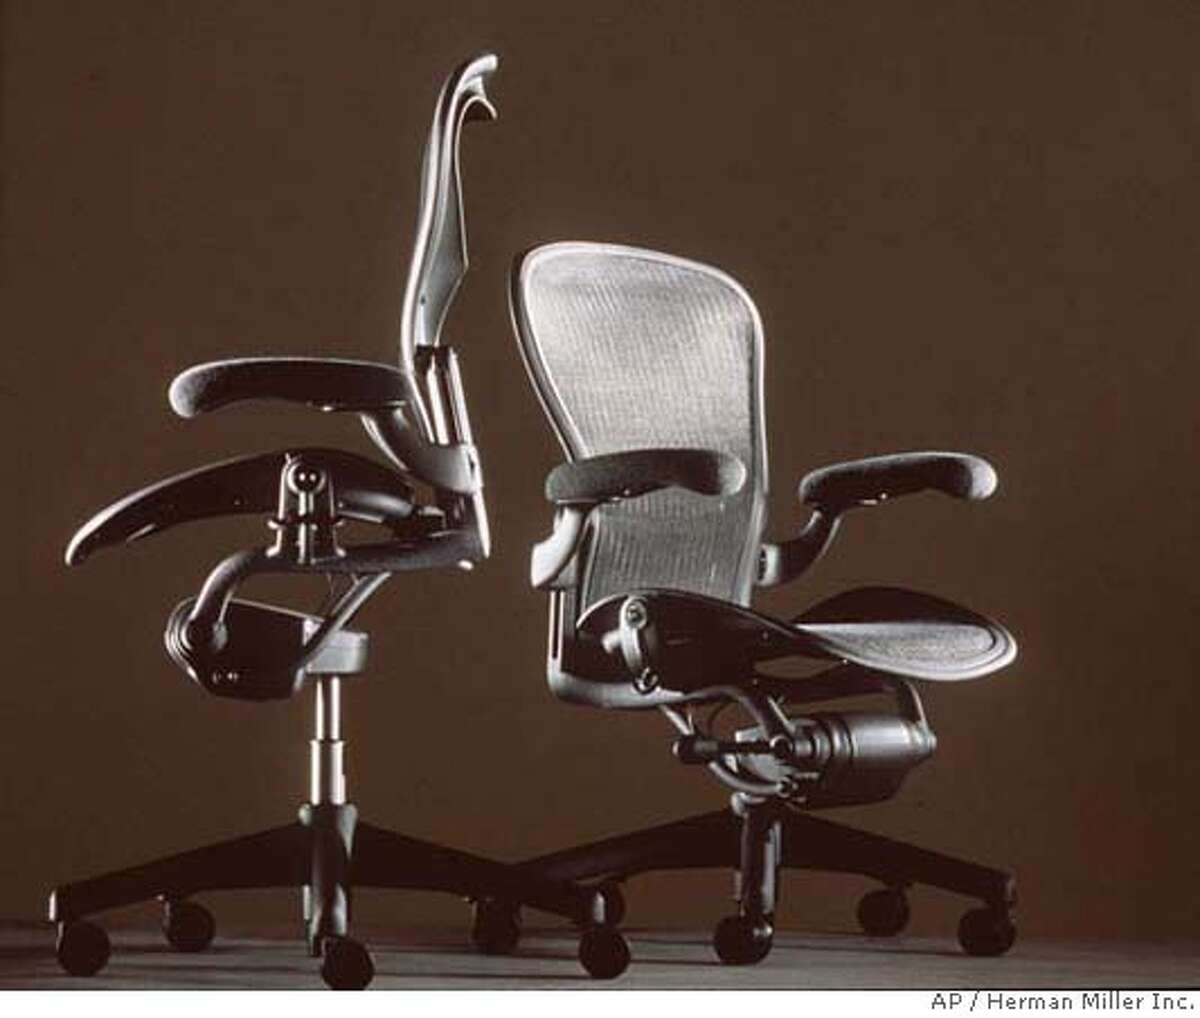 FOR USE ANYTIME--FILE--Aeron chairs designed by Herman Miller Inc. are seen in this undated photo. The top-selling, ulta-sleek Aeron chair is the target of the new Leap chair from Steelcase Inc. as the furniture titans are finding an increasing market for more expensive ergonomic seating. (AP Photo/Herman Miller Inc.) FOR USE ANYTIME. UNDATED HANDOUT PHOTO